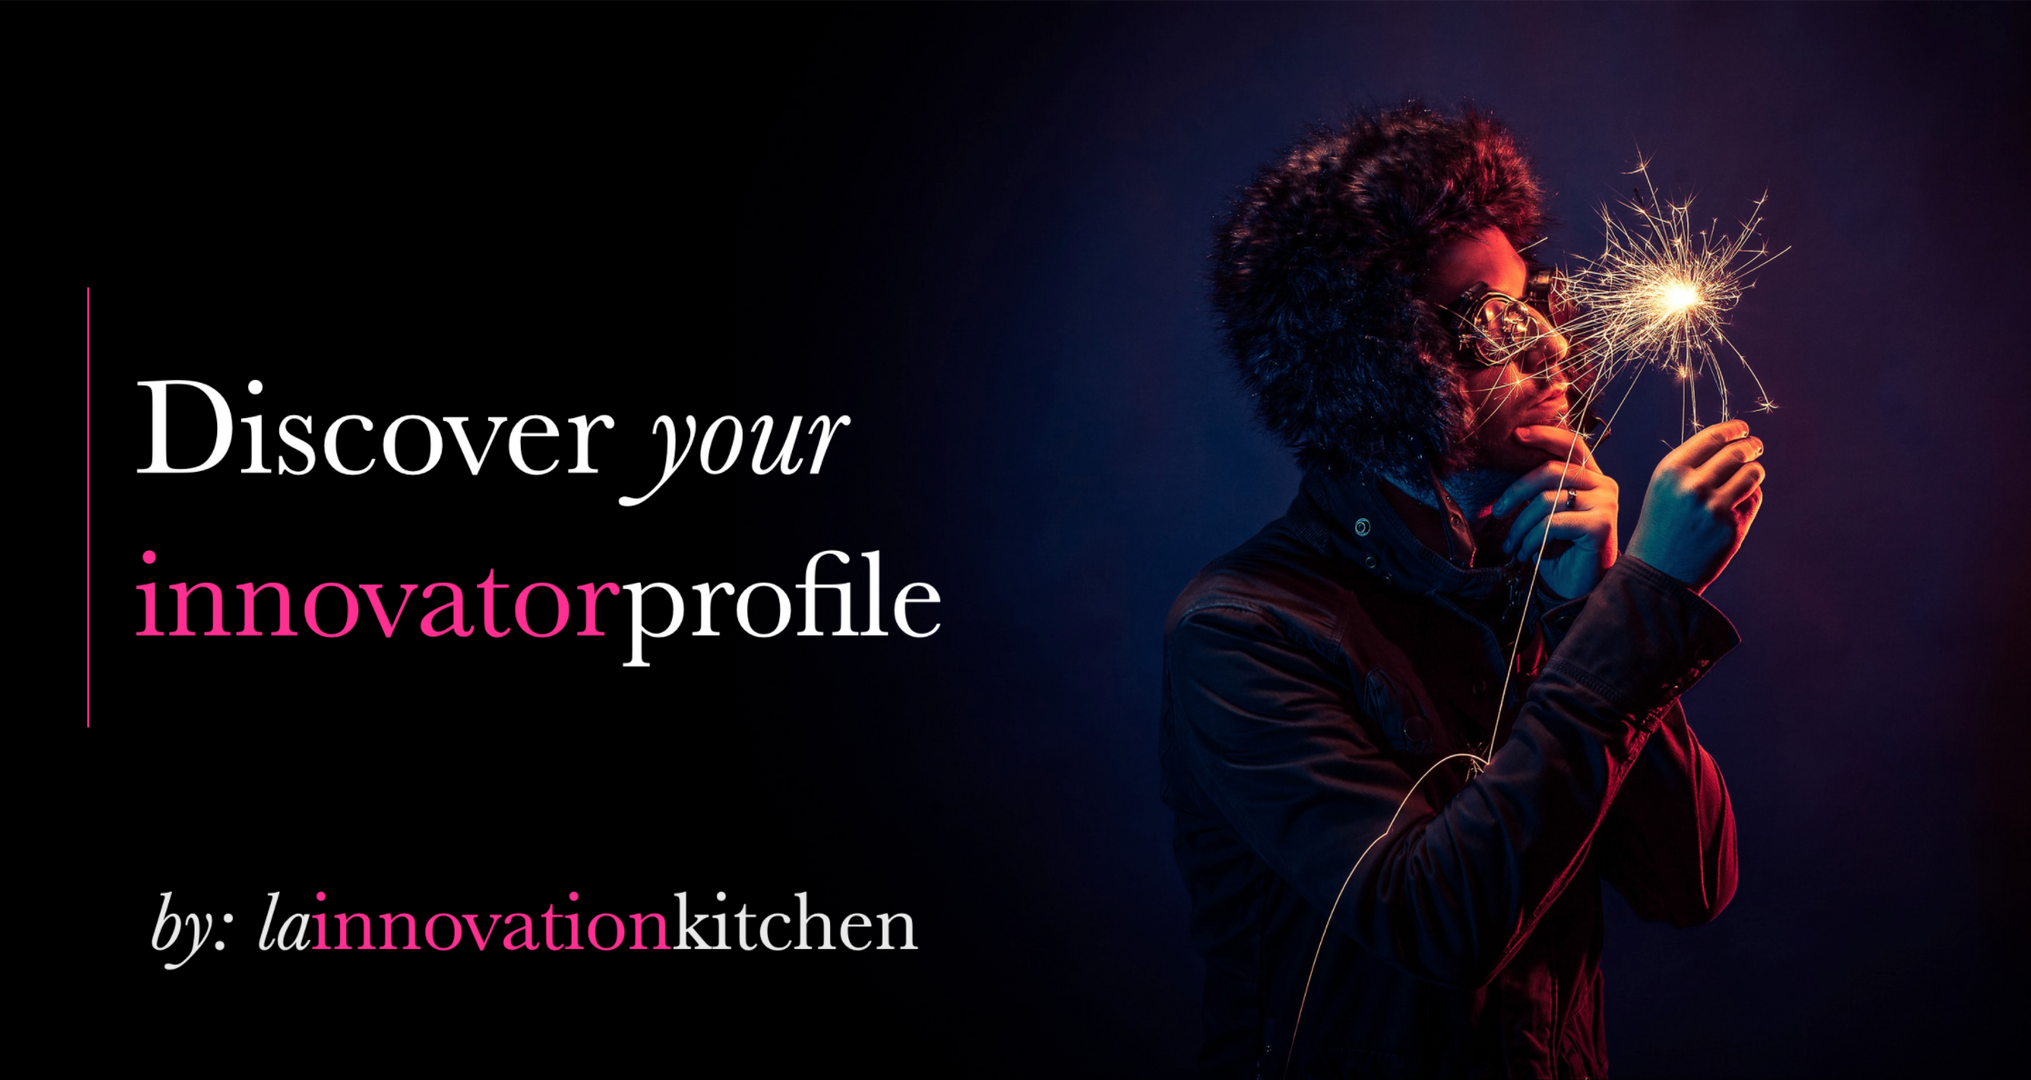 Discover your innovator profile